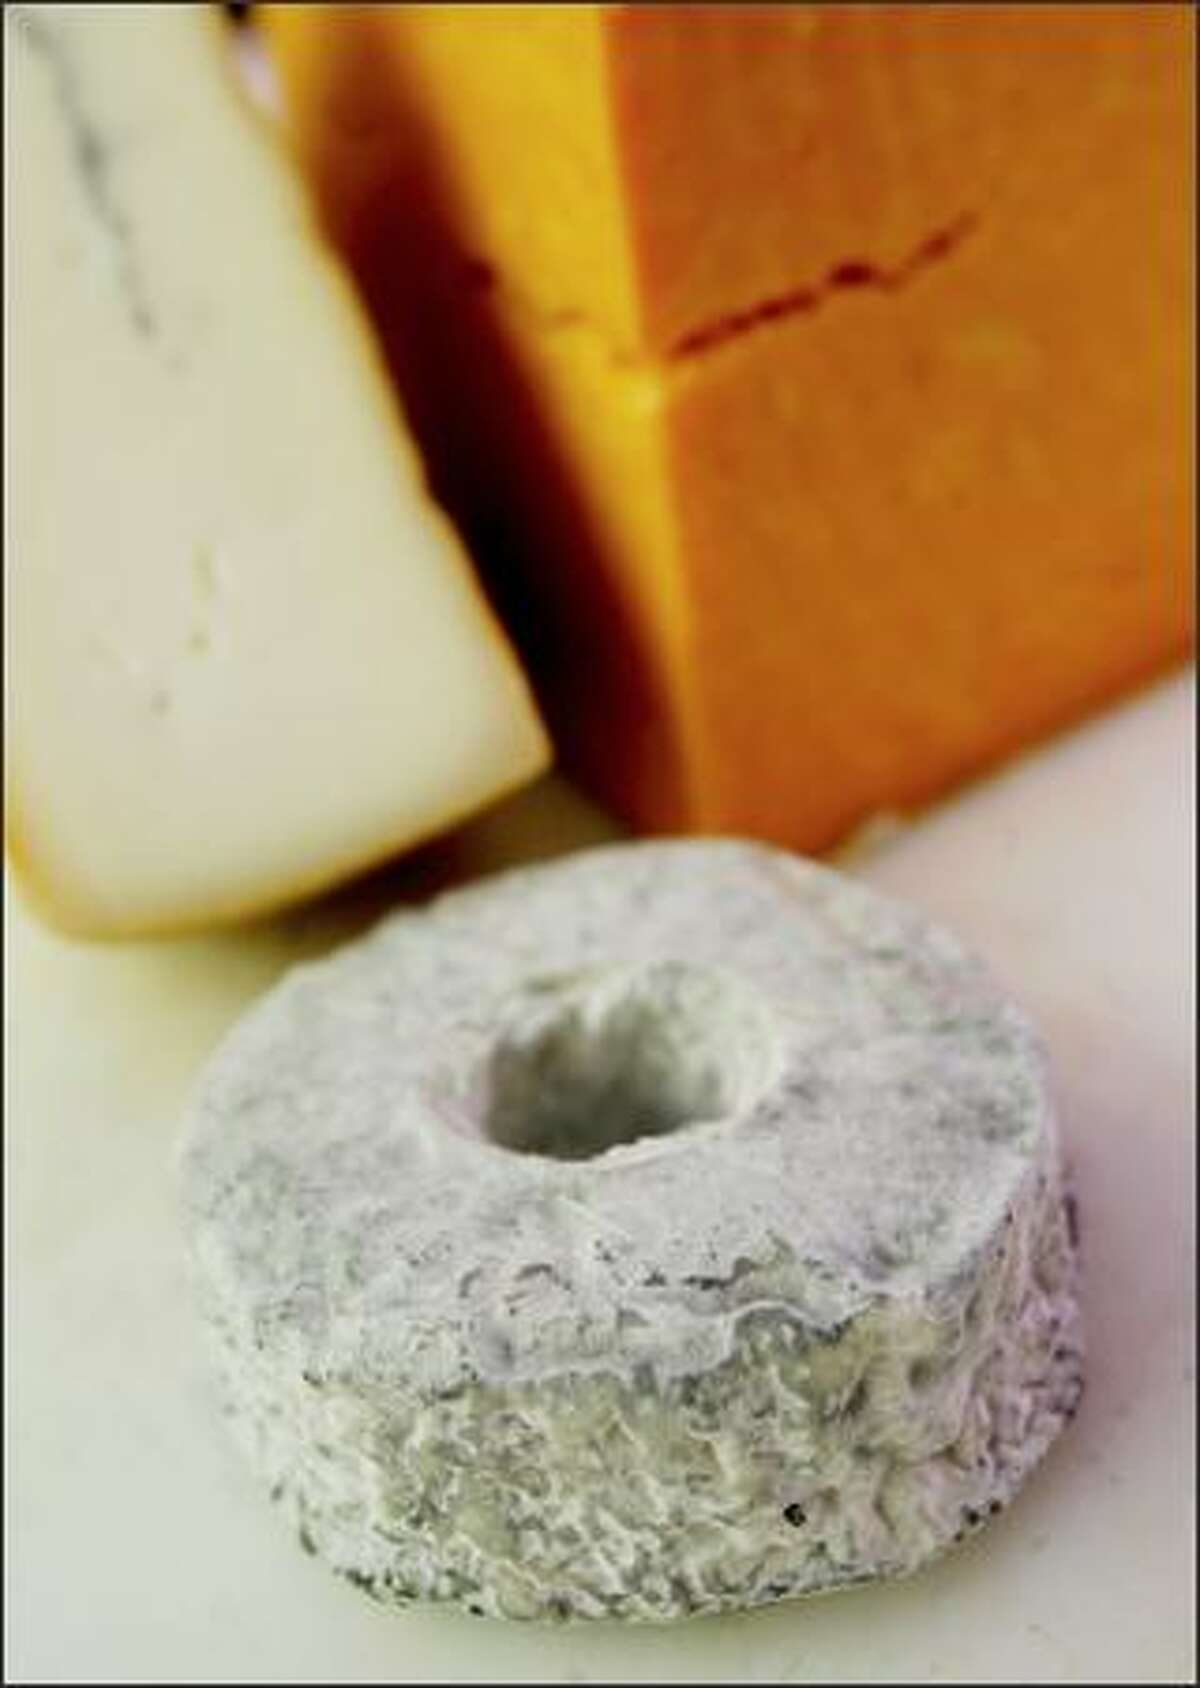 A wheel of Couronne Lochoise, a raw milk cheese from France's Loire Valley, at DeLaurenti.